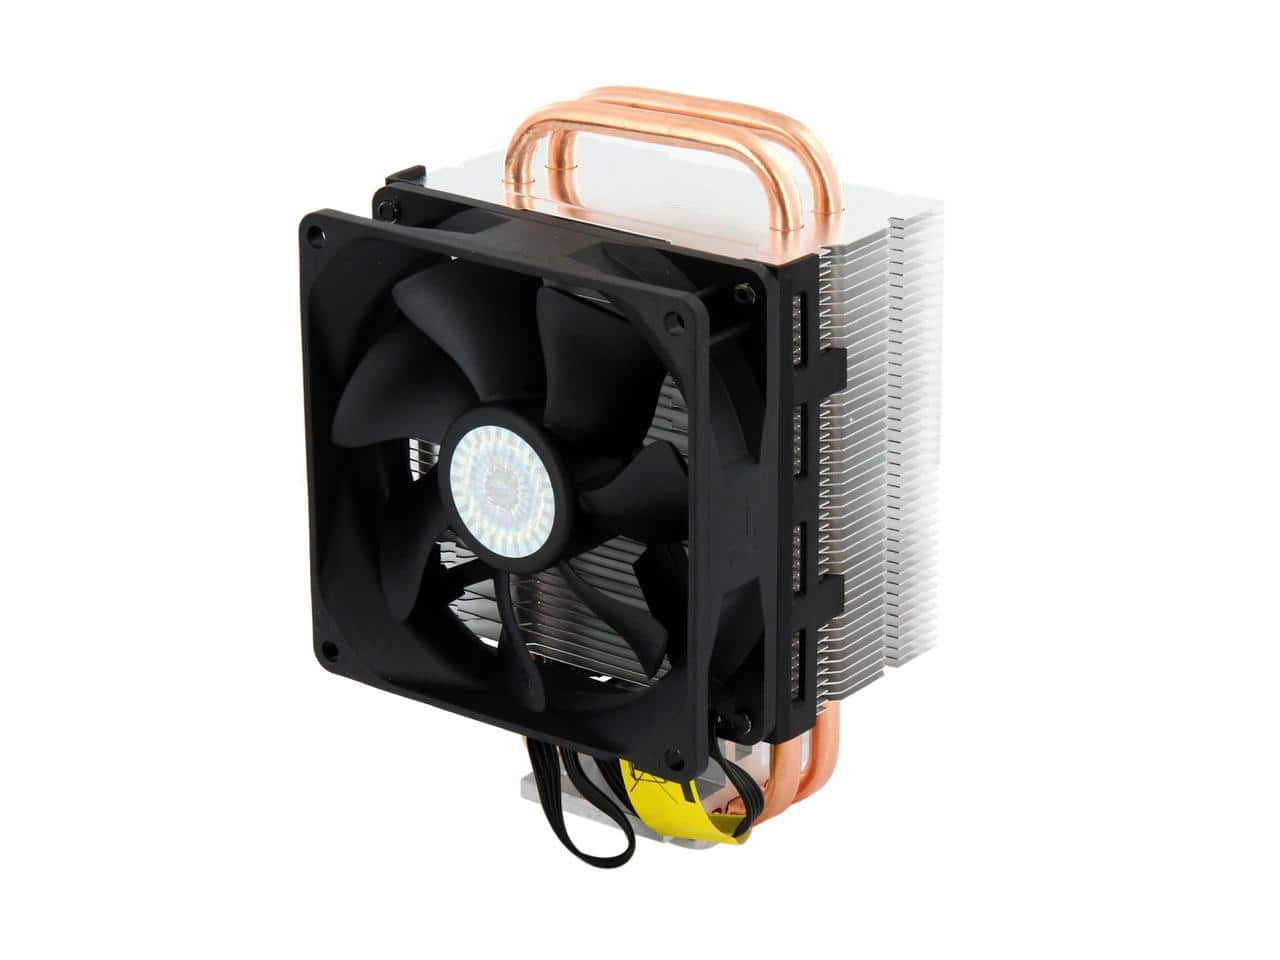 Cooler Master Hyper T2 - Compact CPU Cooler with Dual Looped Direct Contact Heatpipes $9.99 After Rebate